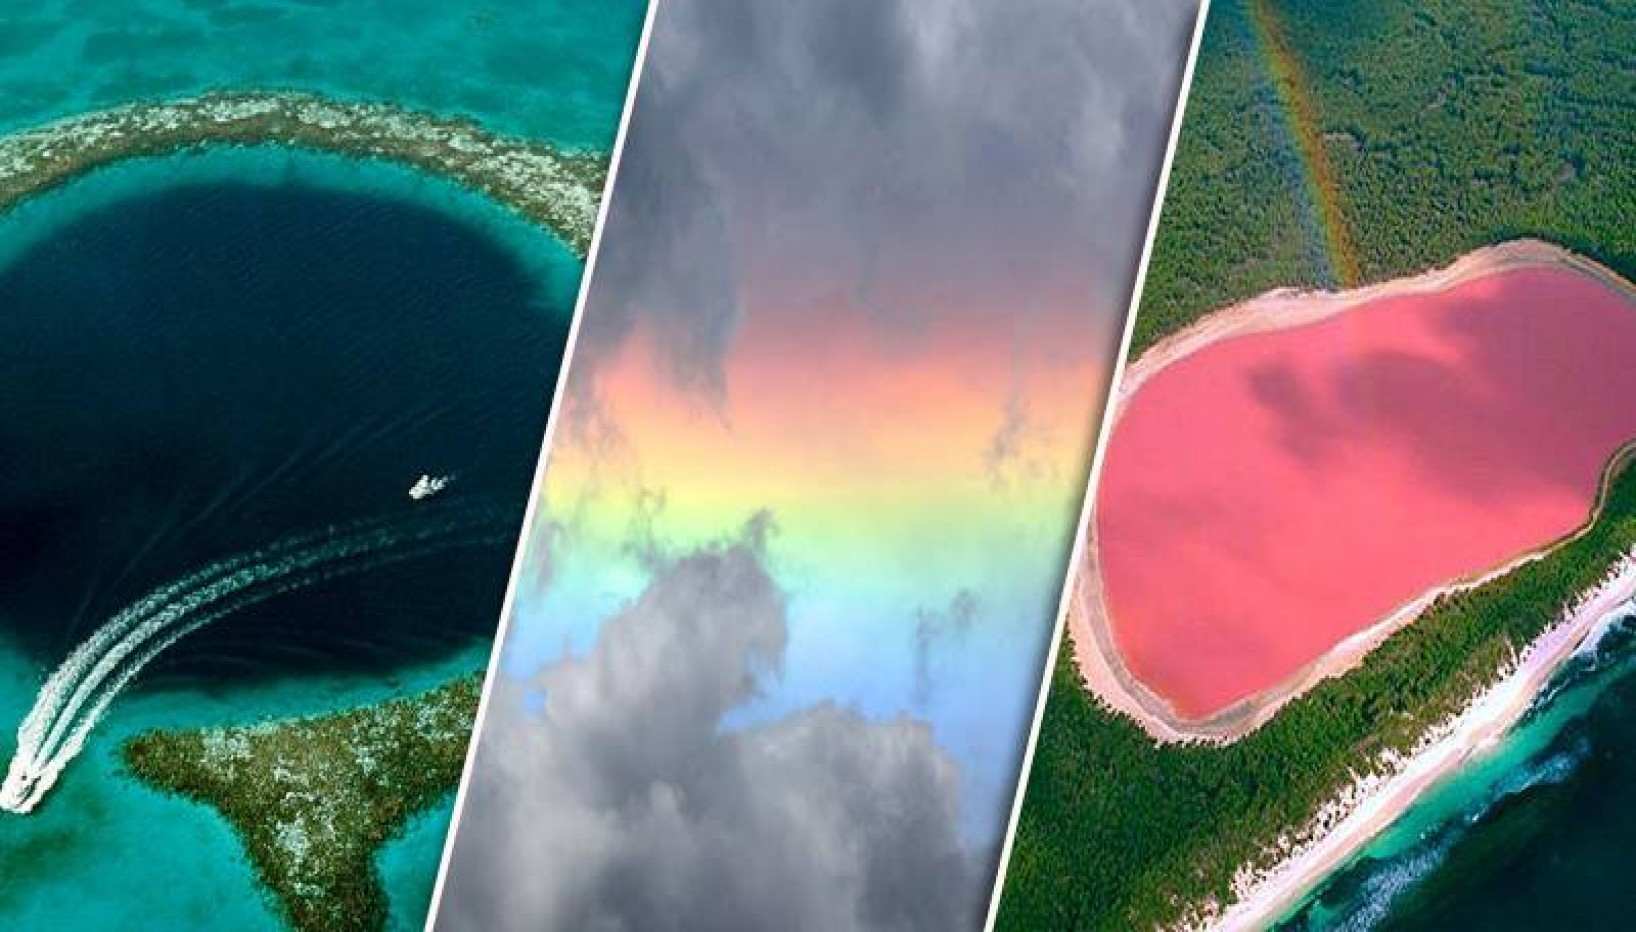 Here Are 13 Of The Most Beautiful Naturally Occurring Phenomena In The World